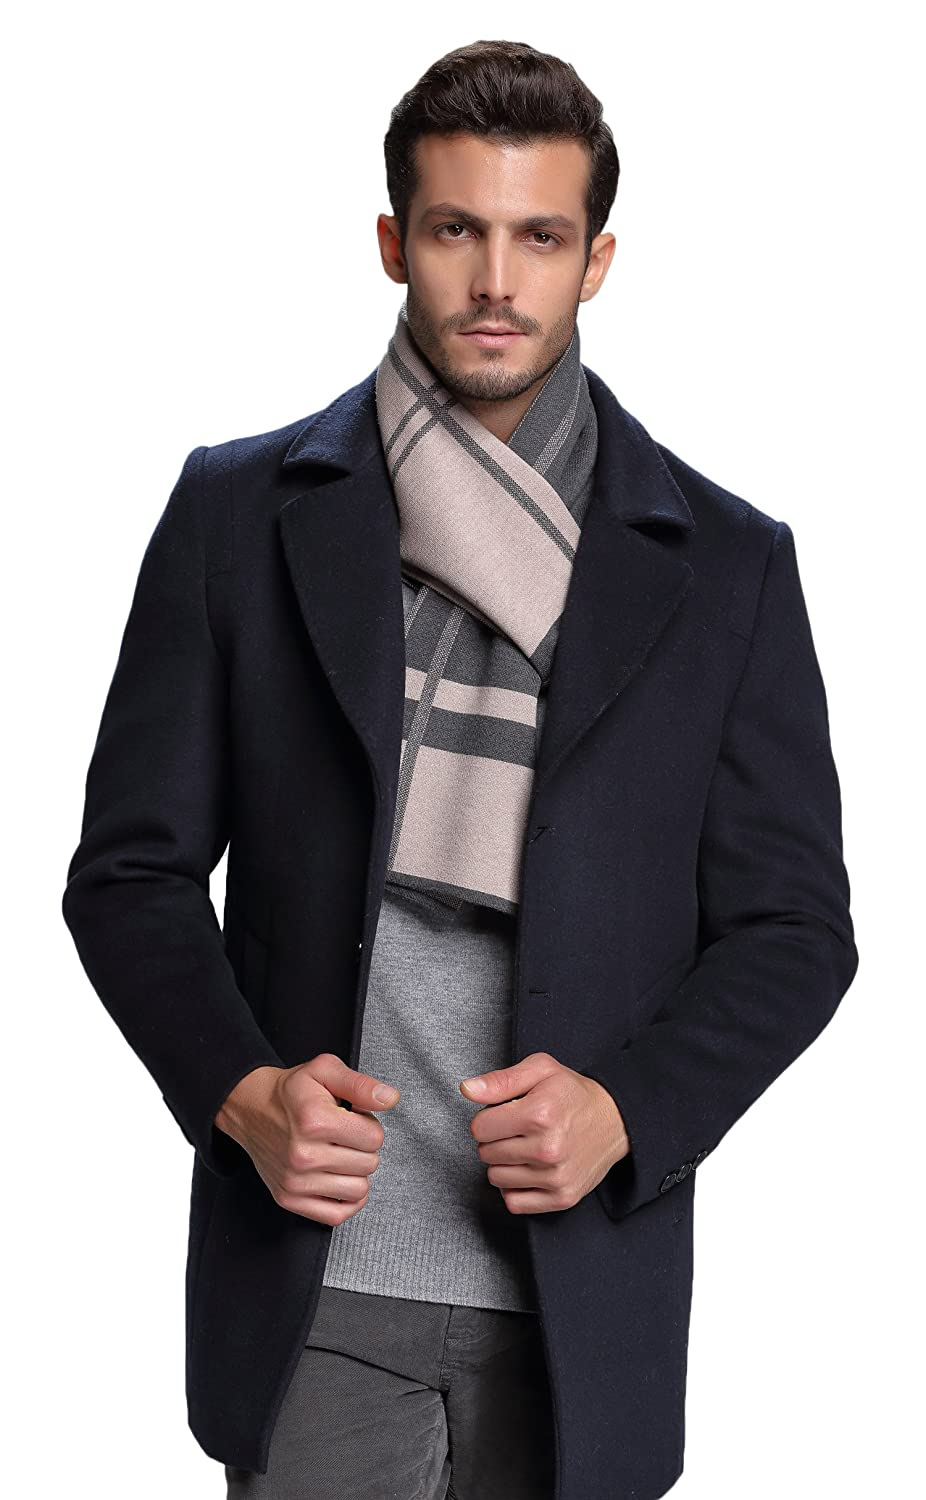 RIONA Men's Winter Cashmere Feel Australian Wool Soft Warm Knitted Scarf with Gift Box(Beige) RIW8167Beige